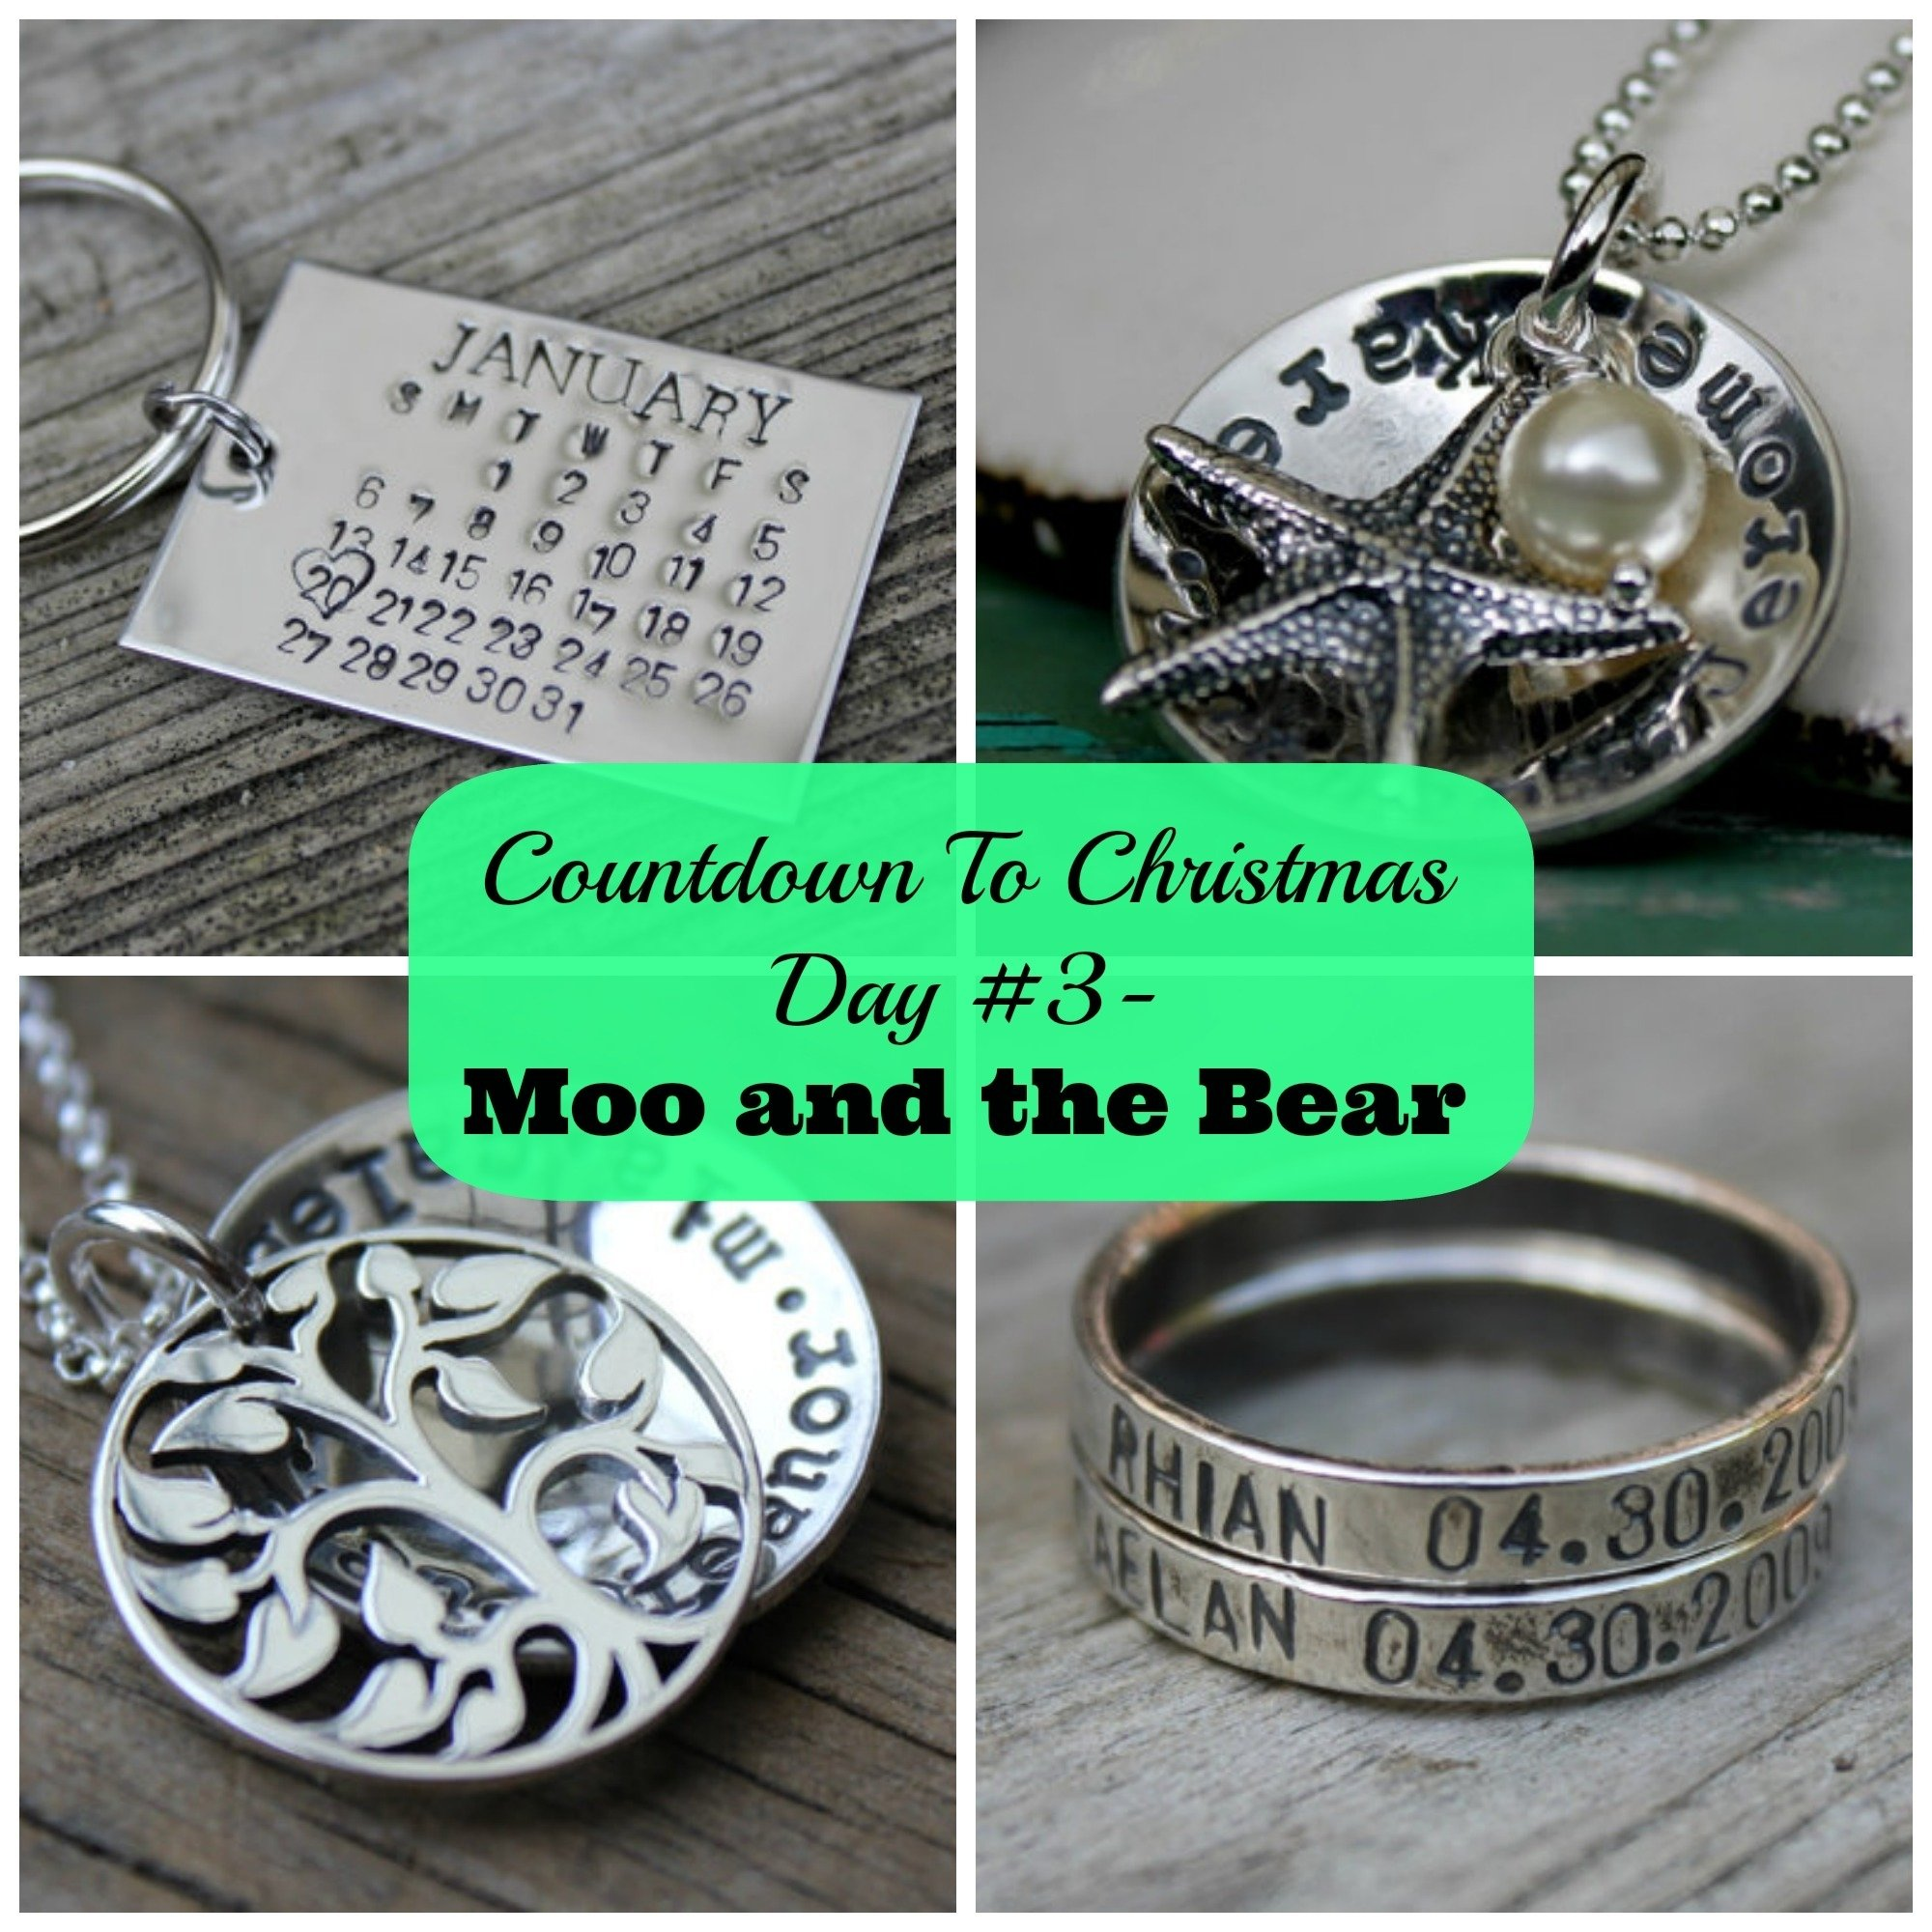 gift ideas for boyfriend: free gift ideas for boyfriend christmas